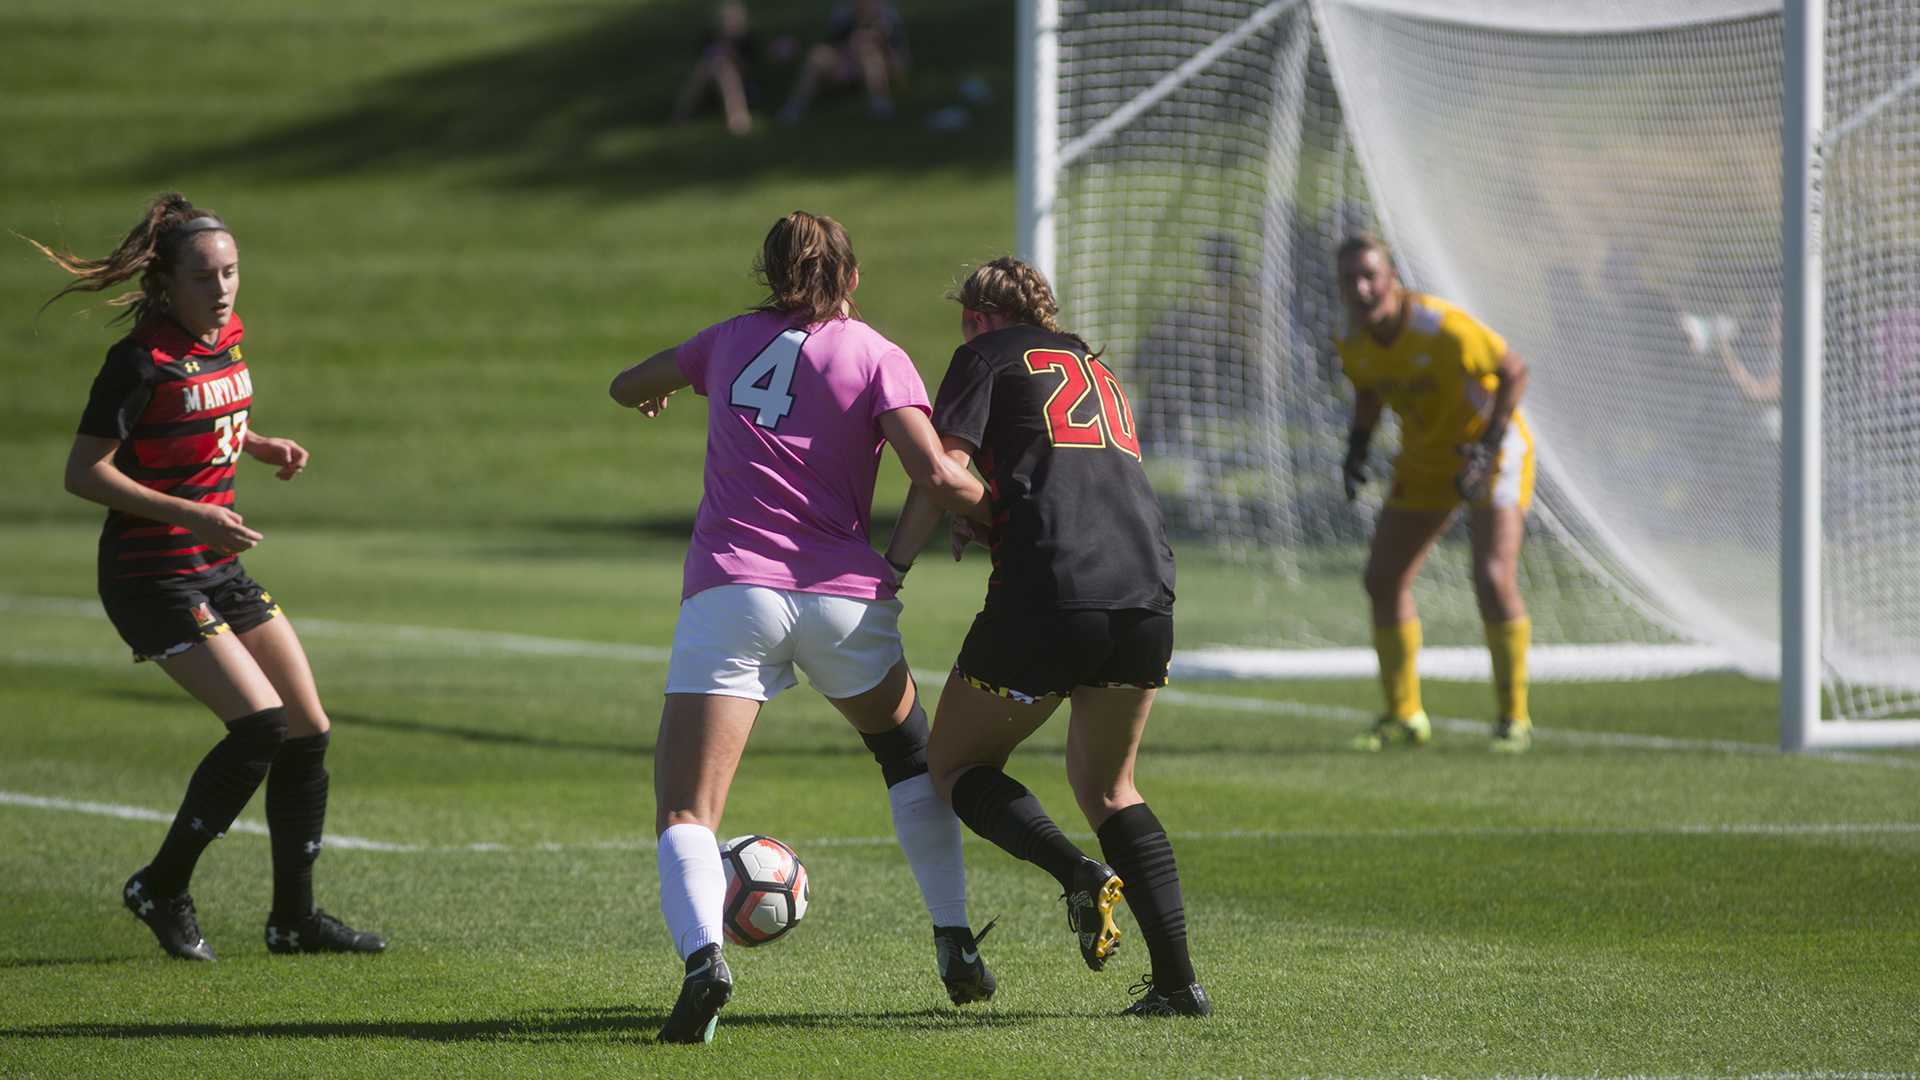 Iowa forward Kaleigh Haus battles Maryland defender Niven Hegeman for the ball at the Iowa Soccer Complex on Sunday, Oct. 8, 2017. The Hawkeyes defeated the Terrapins 4-0. (Ashley Morris/The Daily Iowan)